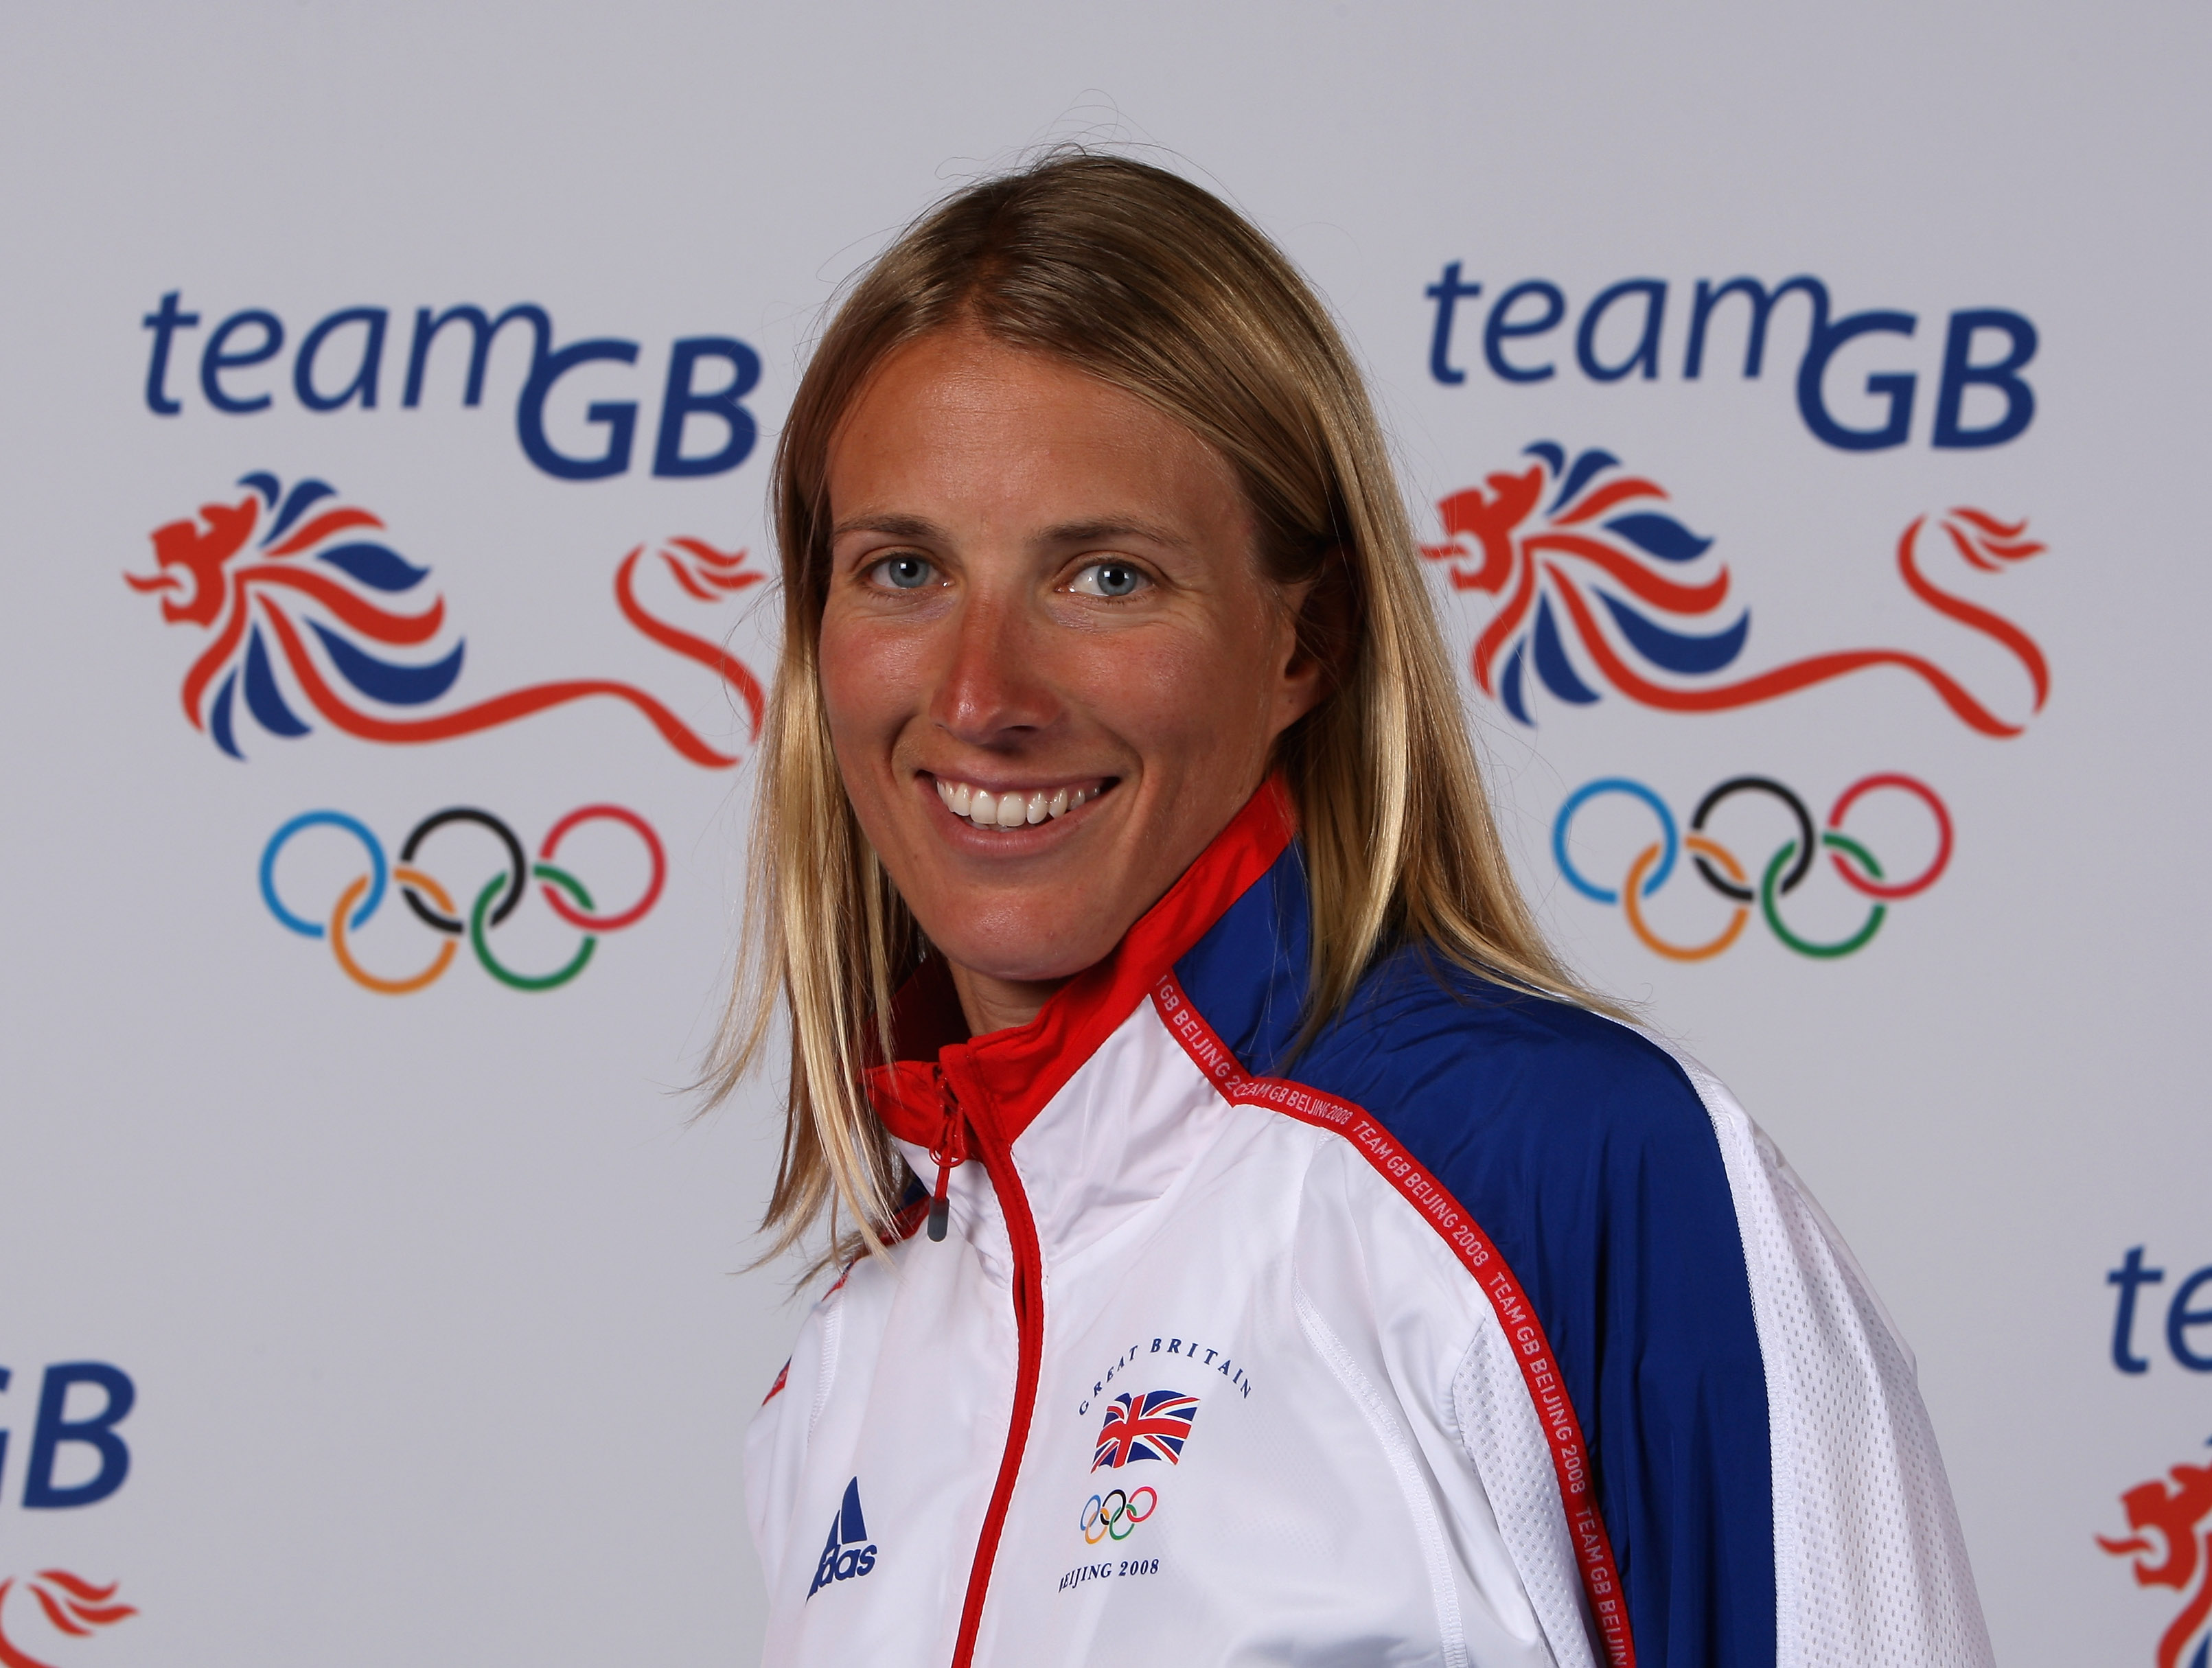 BIRMINGHAM, UNITED KINGDOM - JULY 02: Sailor Saskia Clark of the British Olympic Team, poses for a photograph during the Team GB Kitting Out at the NEC on July 2, 2008 in Birmingham, England. (Photo by David Rogers/Getty Images)